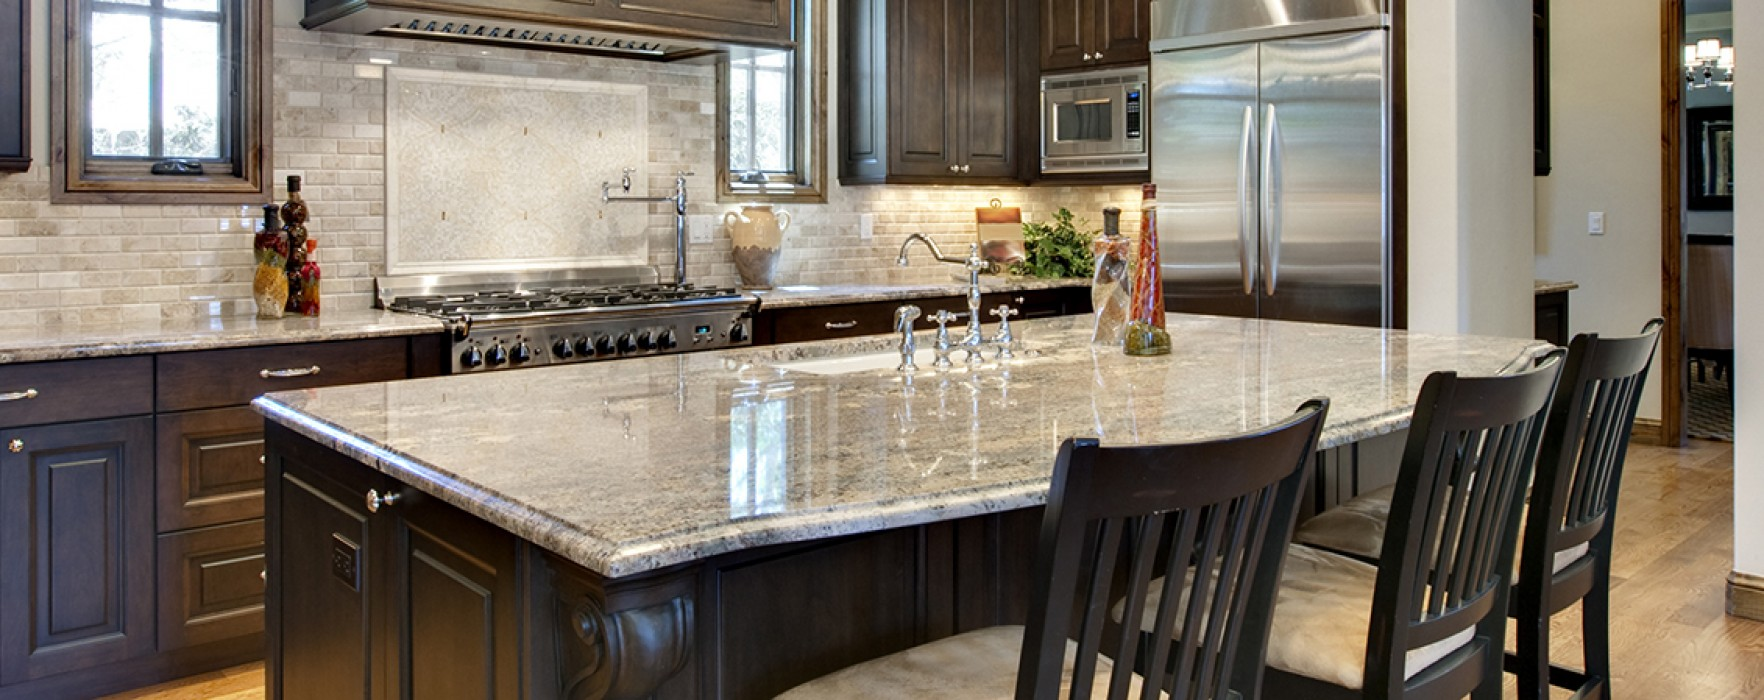 Easy kitchen makeover refinished countertops better for Simple kitchen